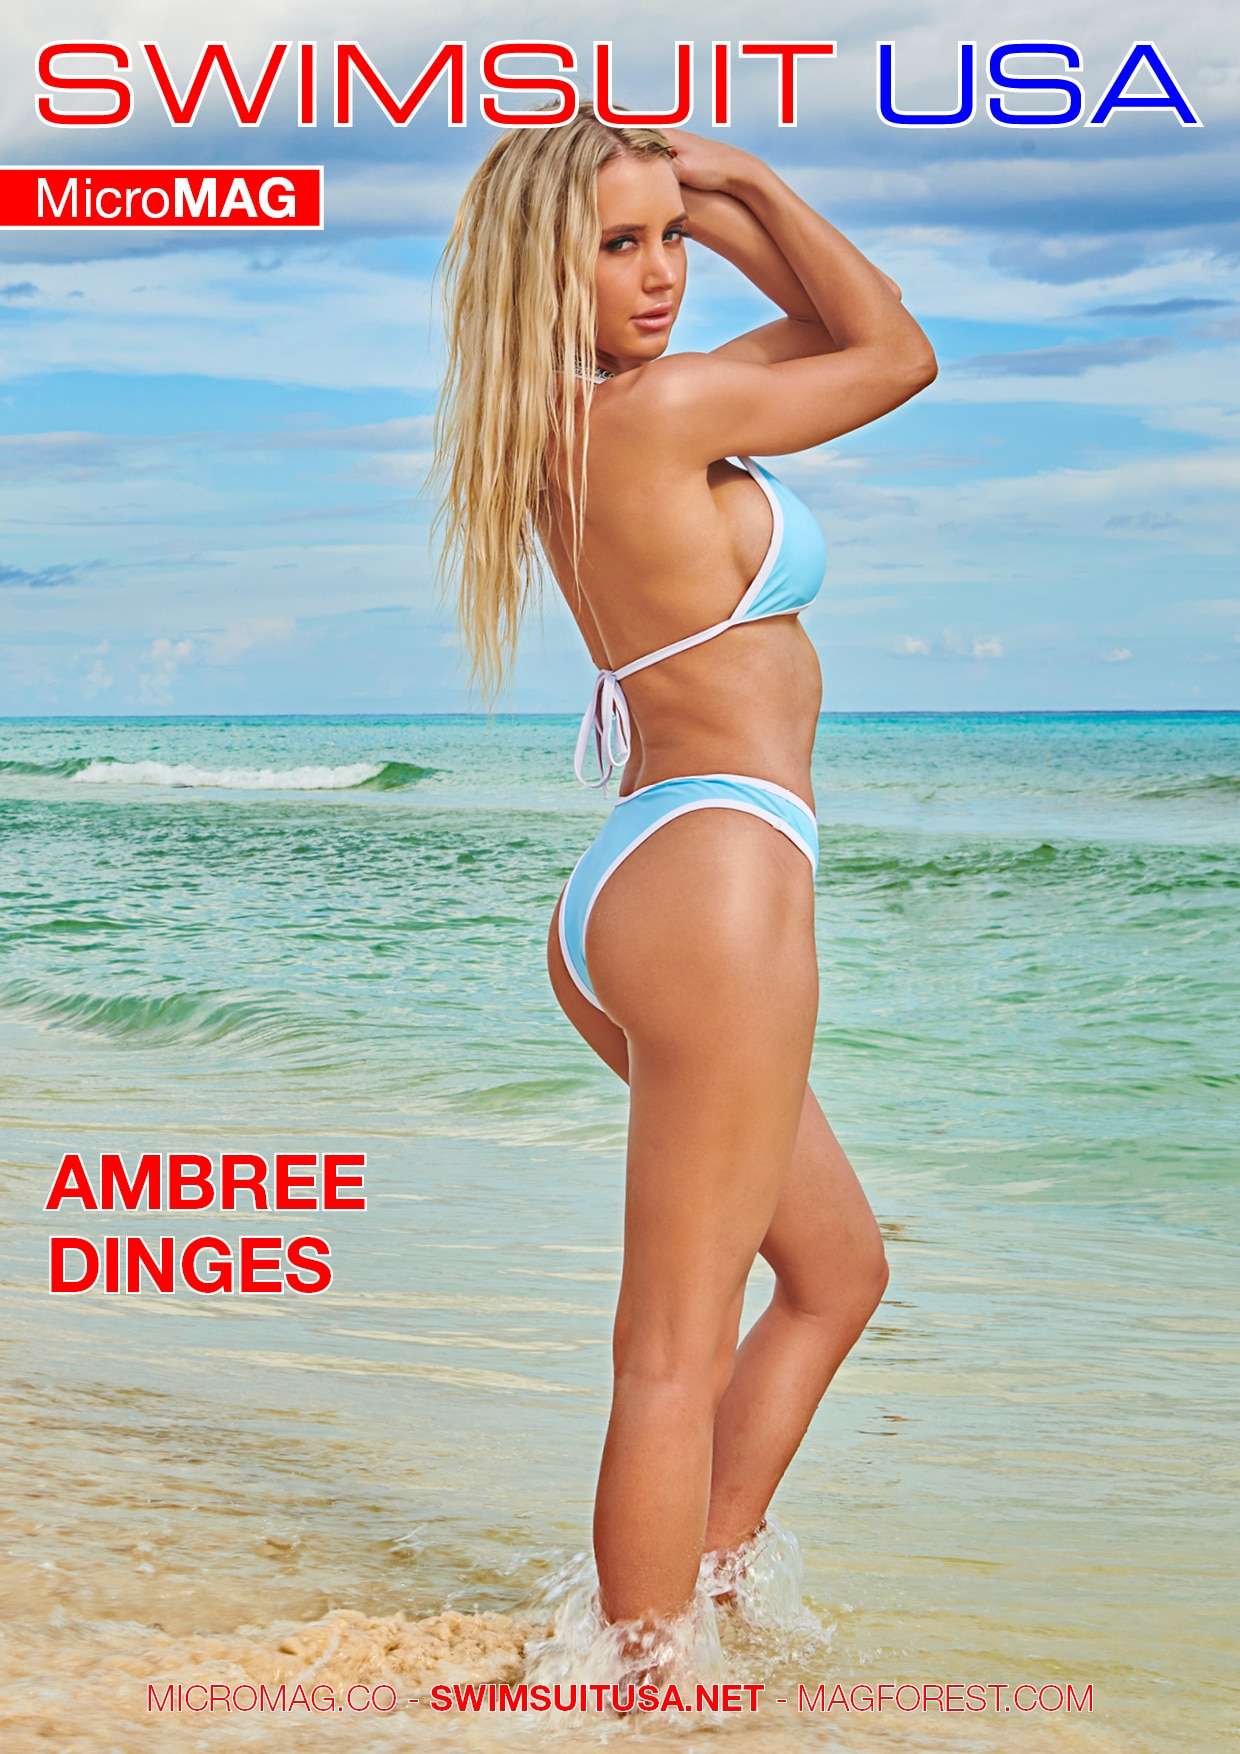 Swimsuit USA MicroMAG - Ambree Dinges - Issue 2 1